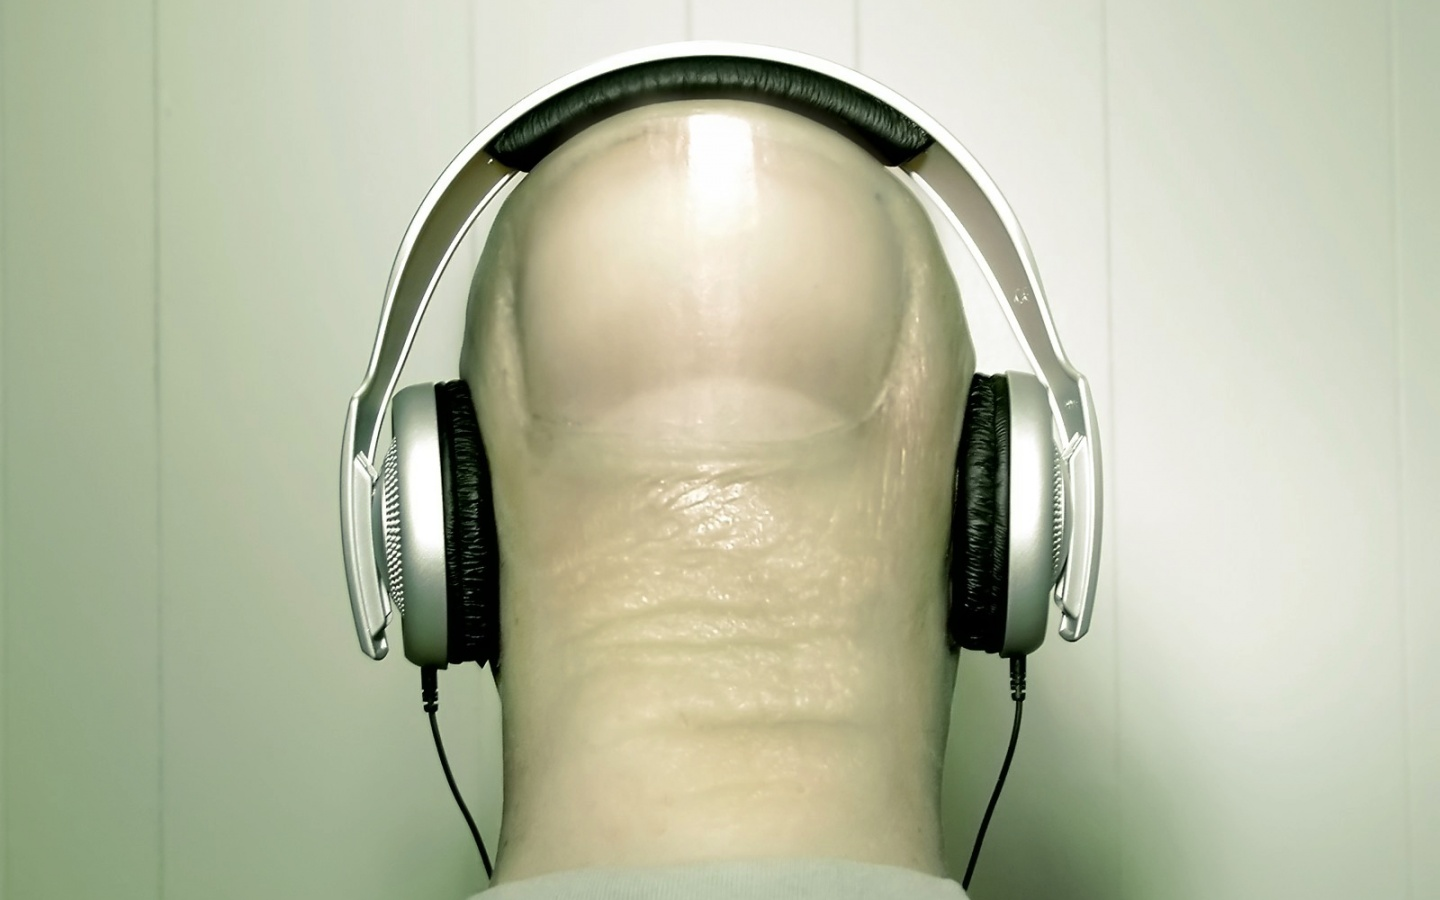 1440x900 Headphones on head